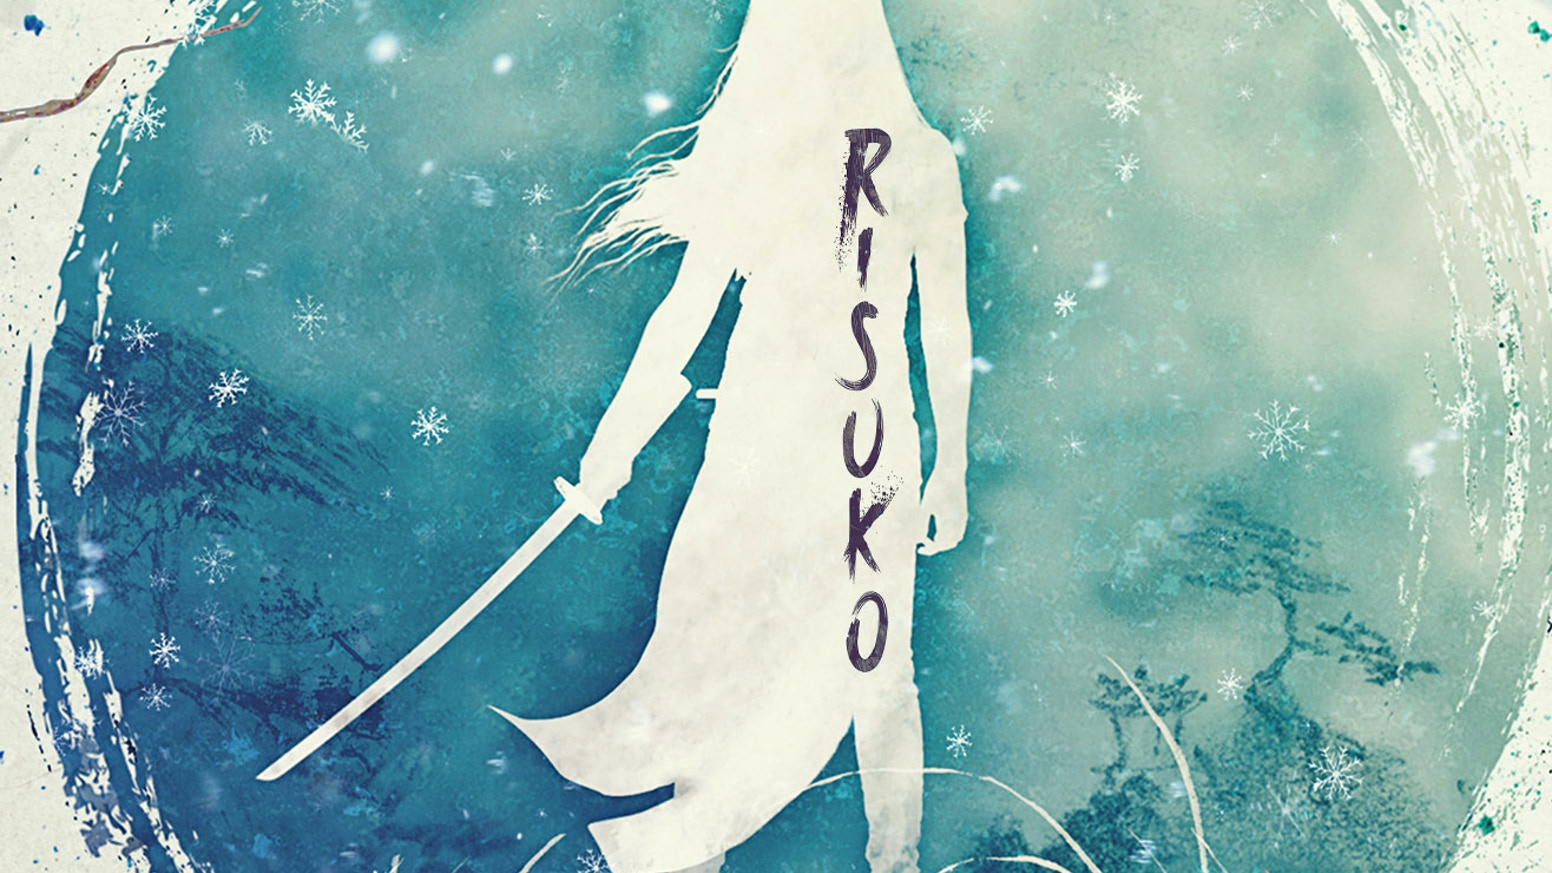 Can one girl win a war?  Magical but historical, Risuko follows one young woman along the first steps to discovering who she truly is. Now available from Stillpoint Digital Press at your favorite bookseller!